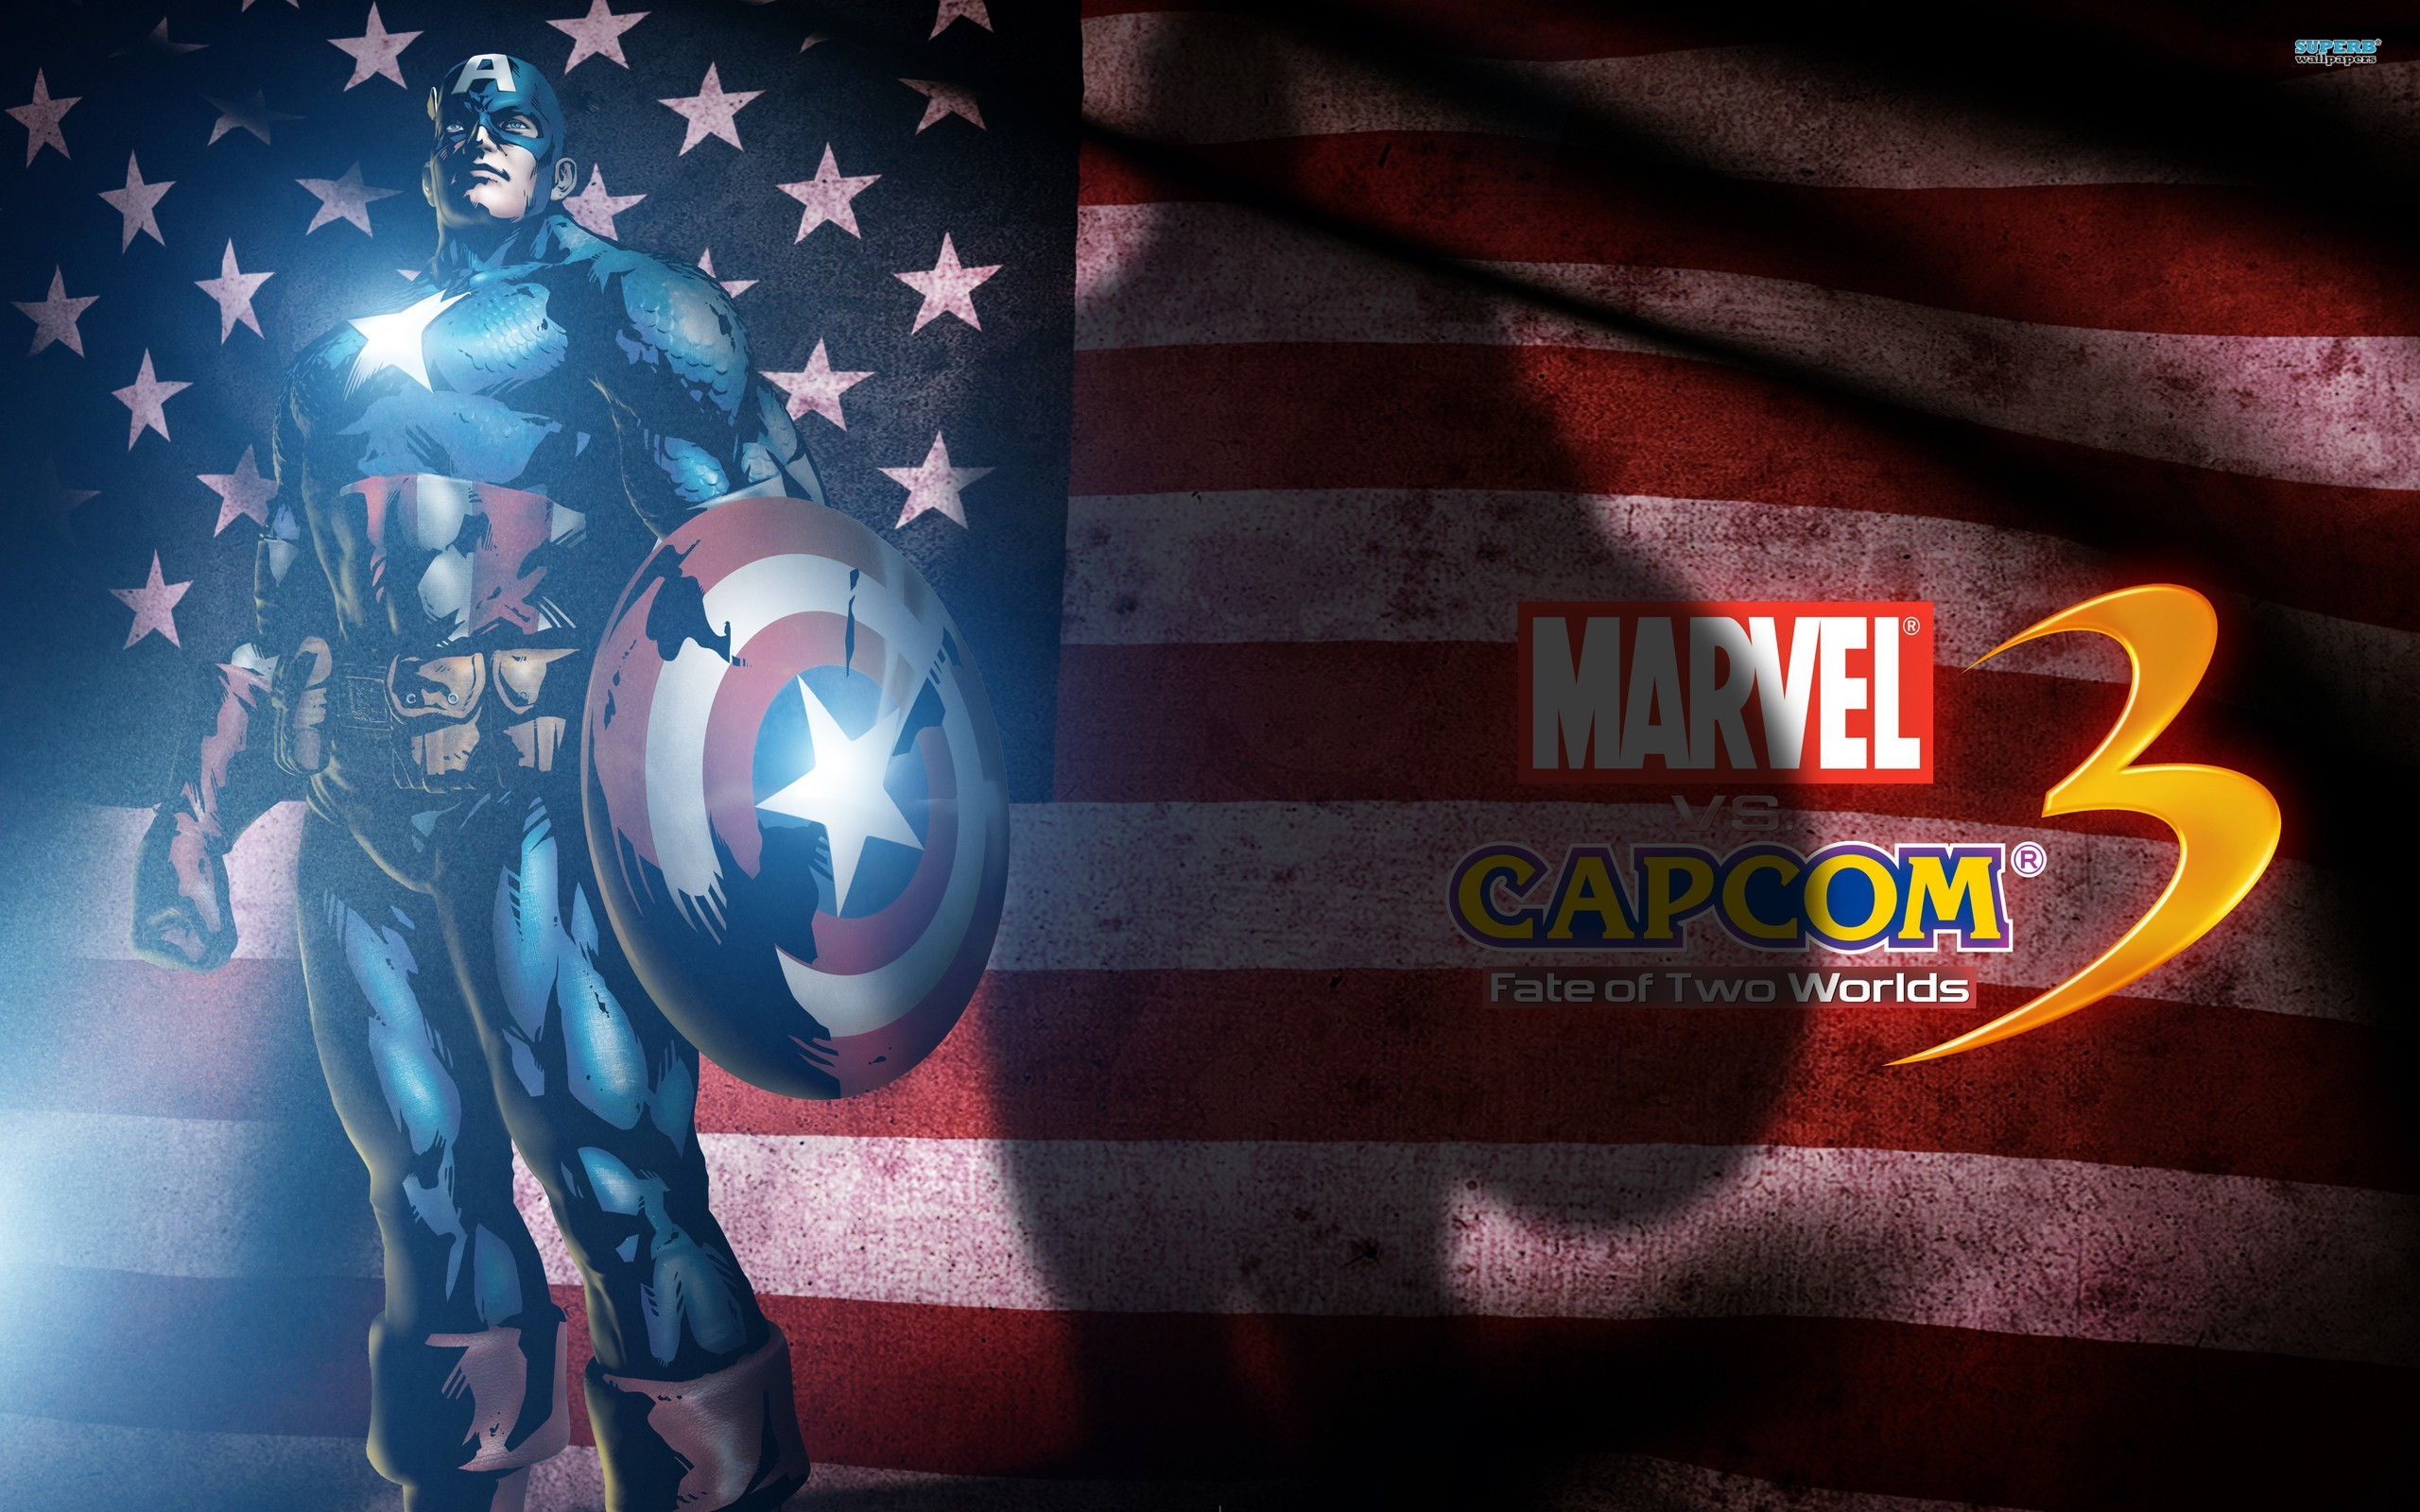 2560x1600 Marvel Comics, Hd Wallpaper, Chris Evans, Robert Downey Jr., The Winter